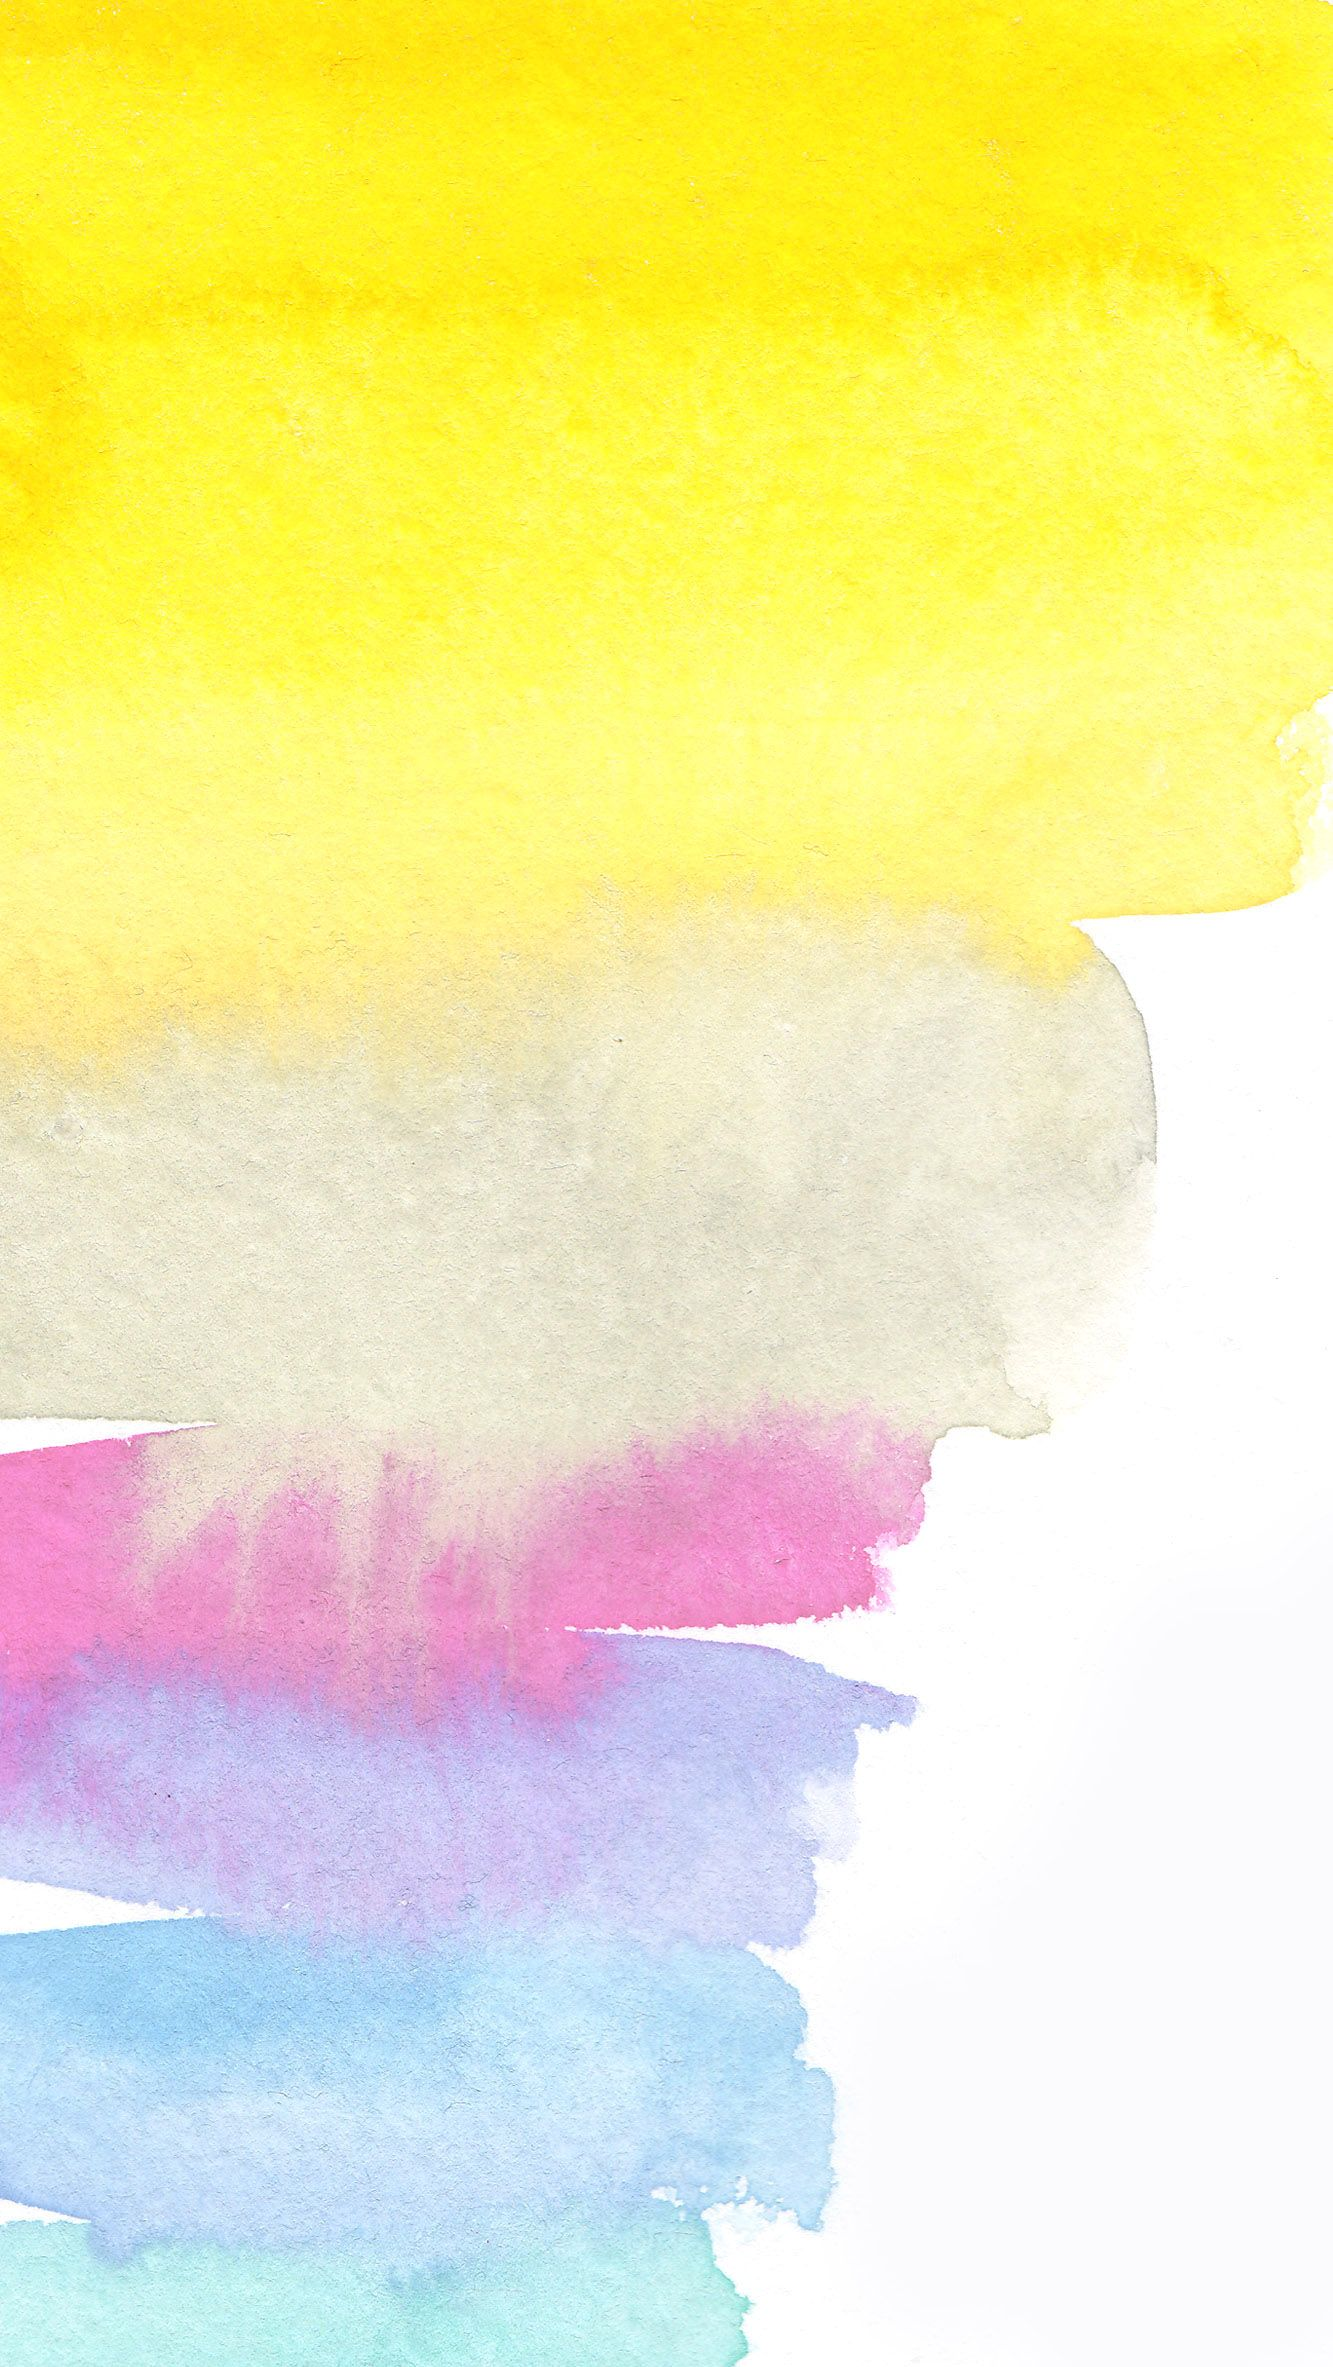 Yellow White Pink Lilac Blue Watercolour Brush Strokes Art Iphone Wallpaper Phone Background Lock Screen